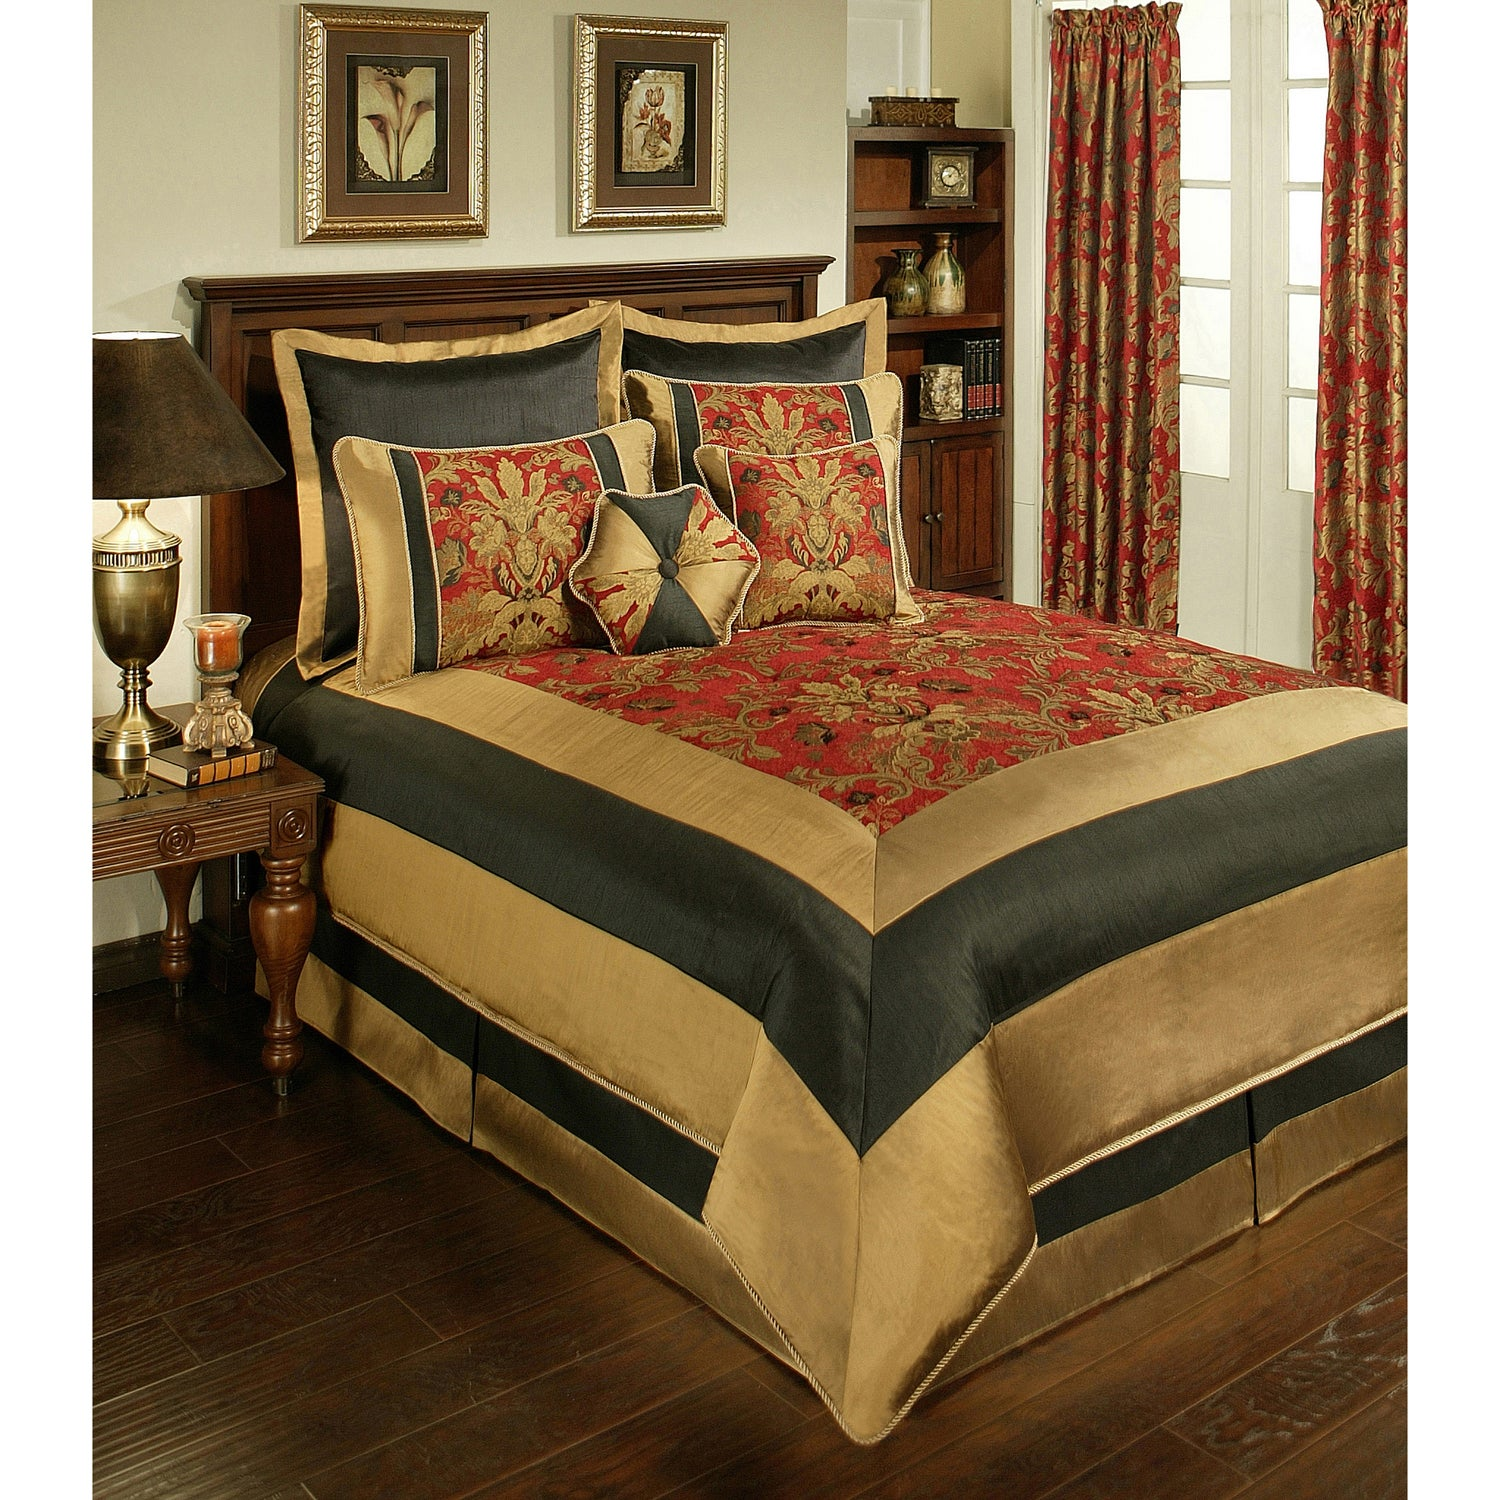 Sherry Kline Milano Red Black 8 Piece Comforter Set Overstock 7901085